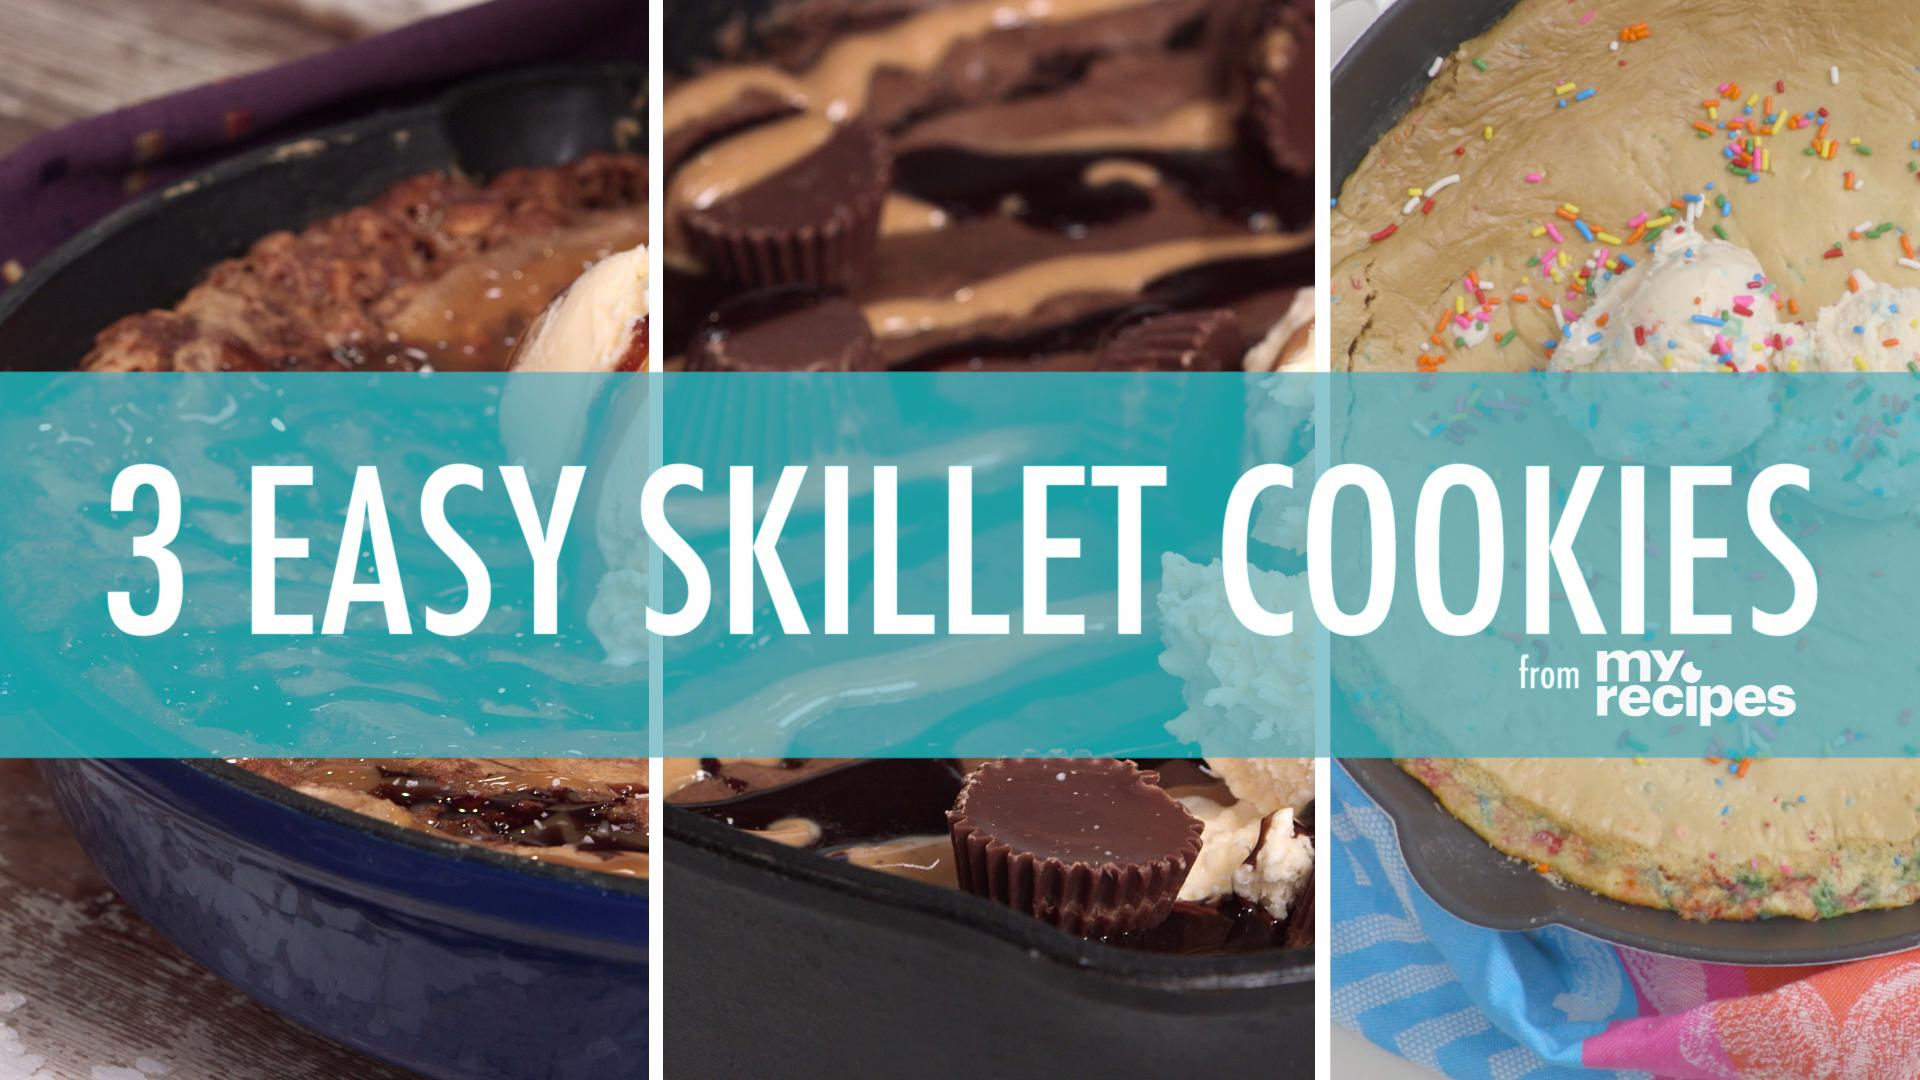 3 Simple Recipes for Skillet Cookies